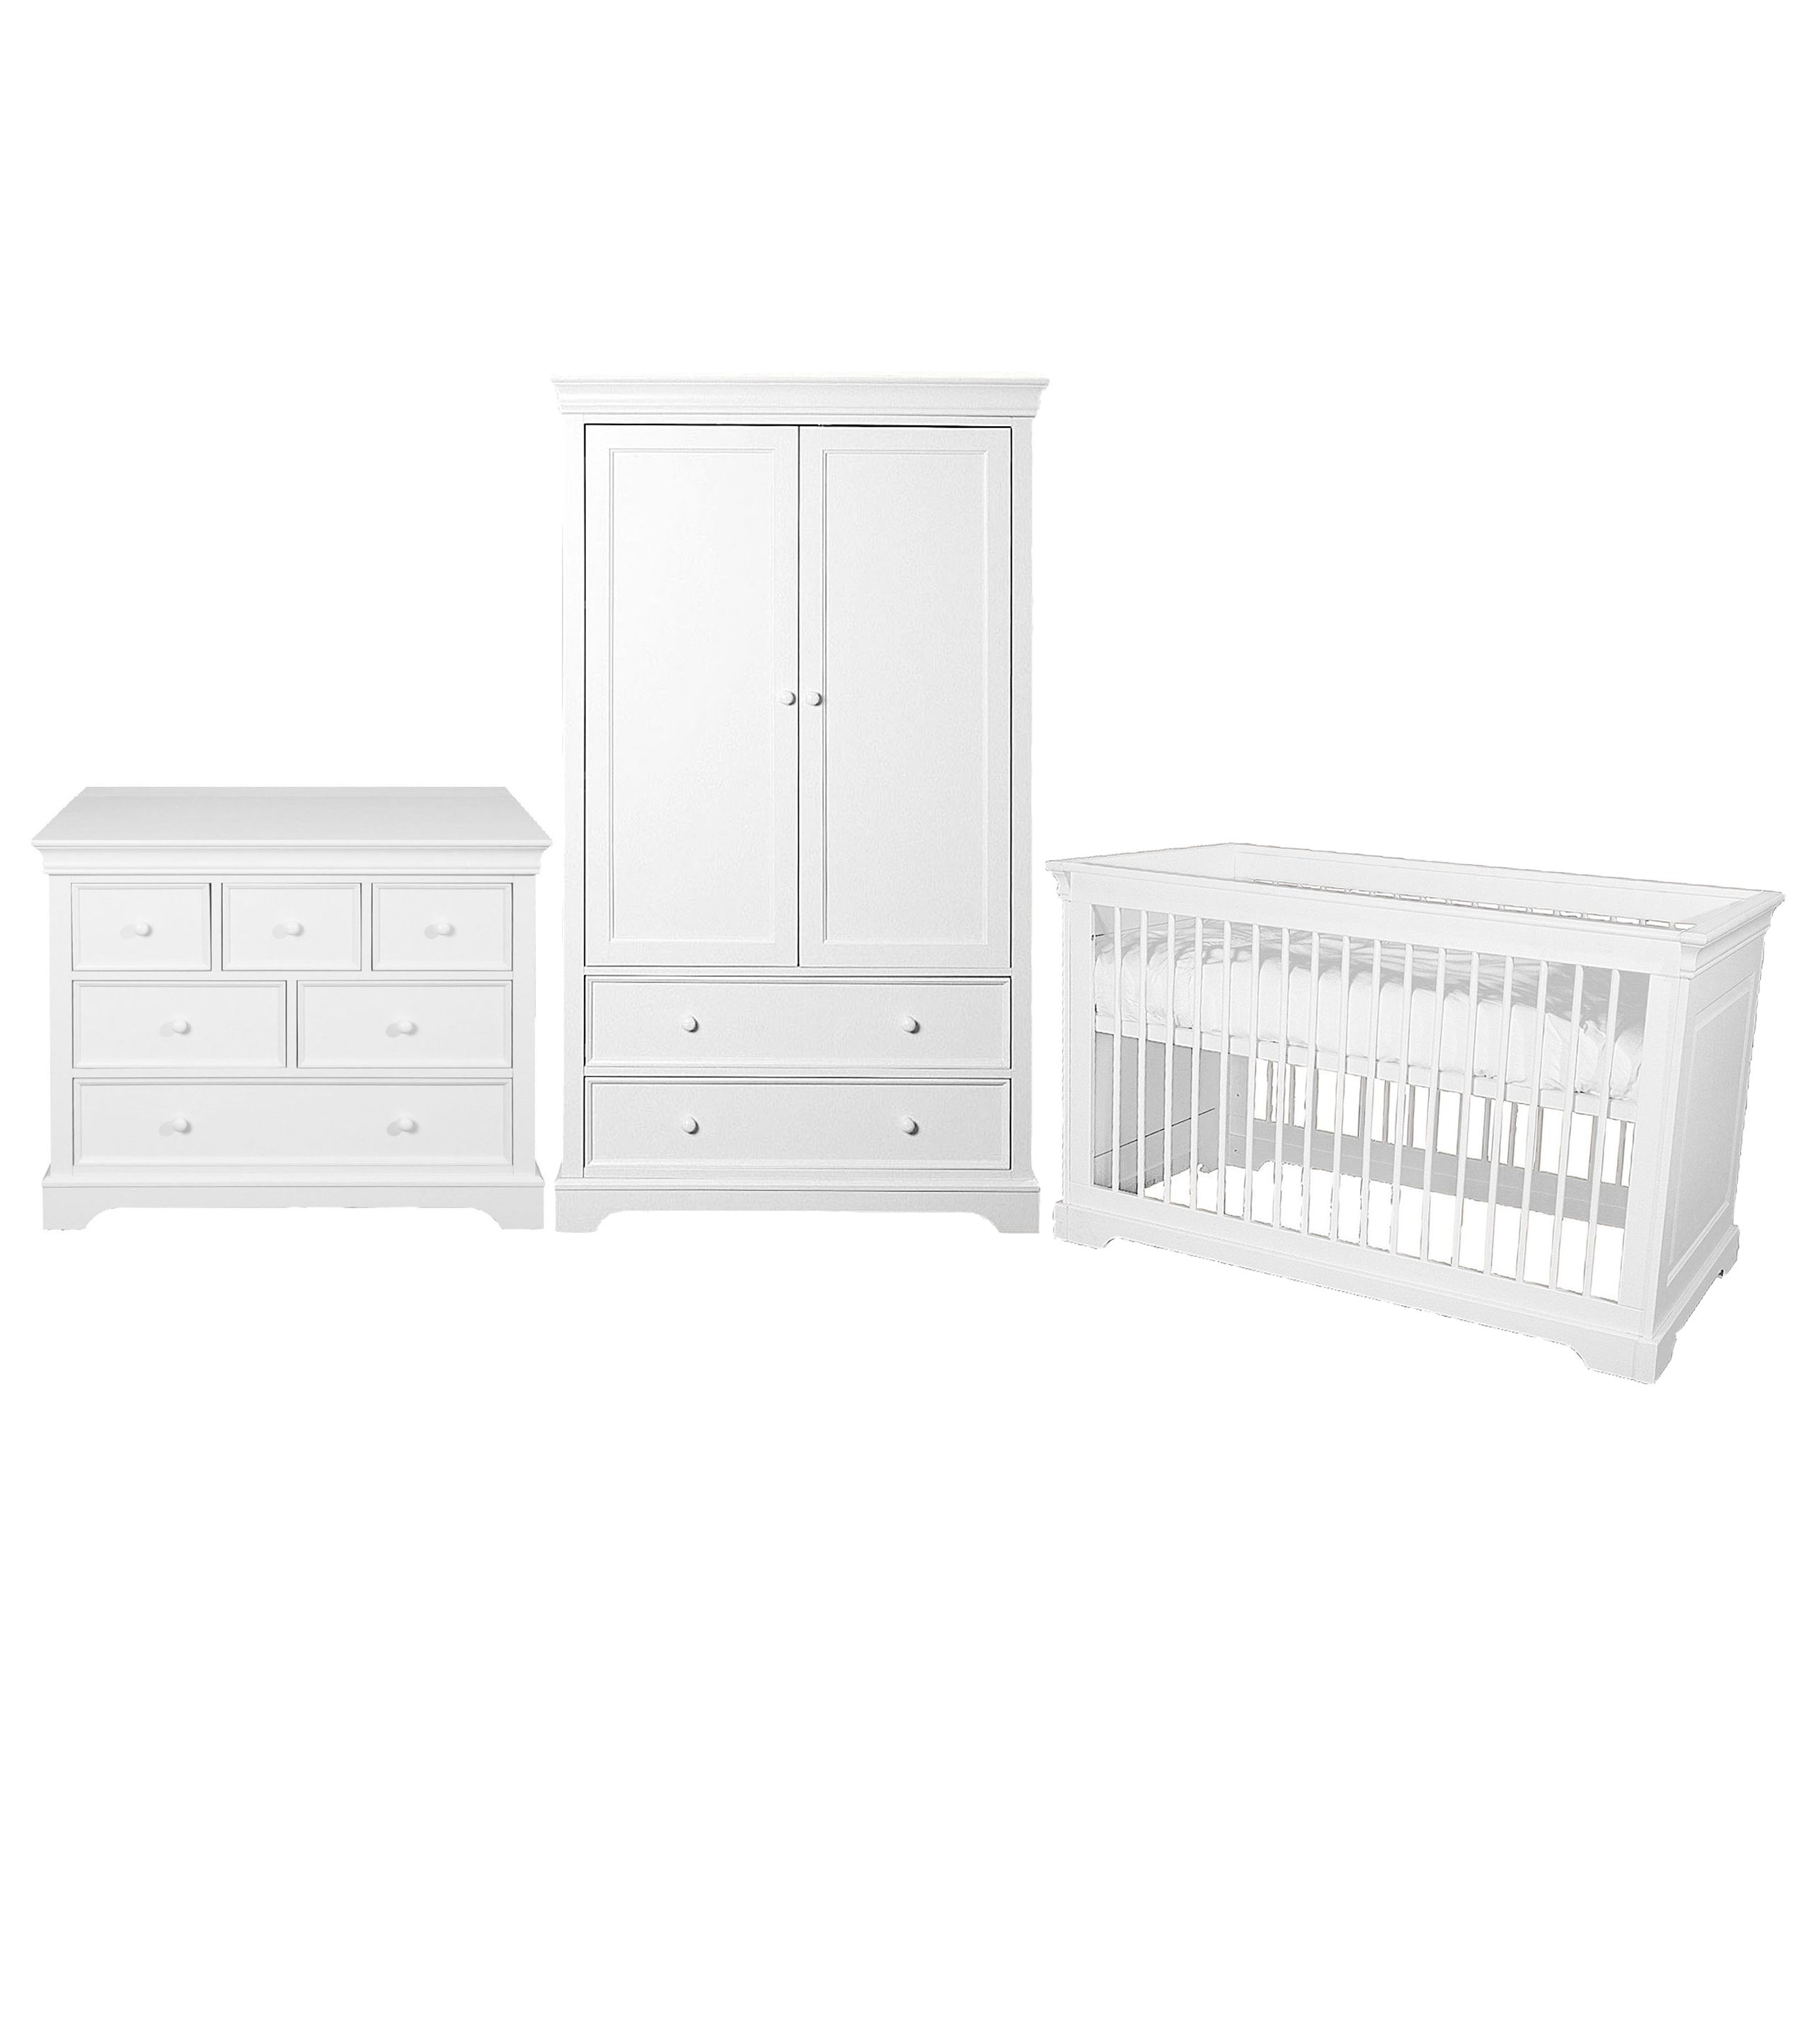 kidsmill marseille 3 piece nursery furniture set 162300 baby nursery furniture kidsmill malmo white